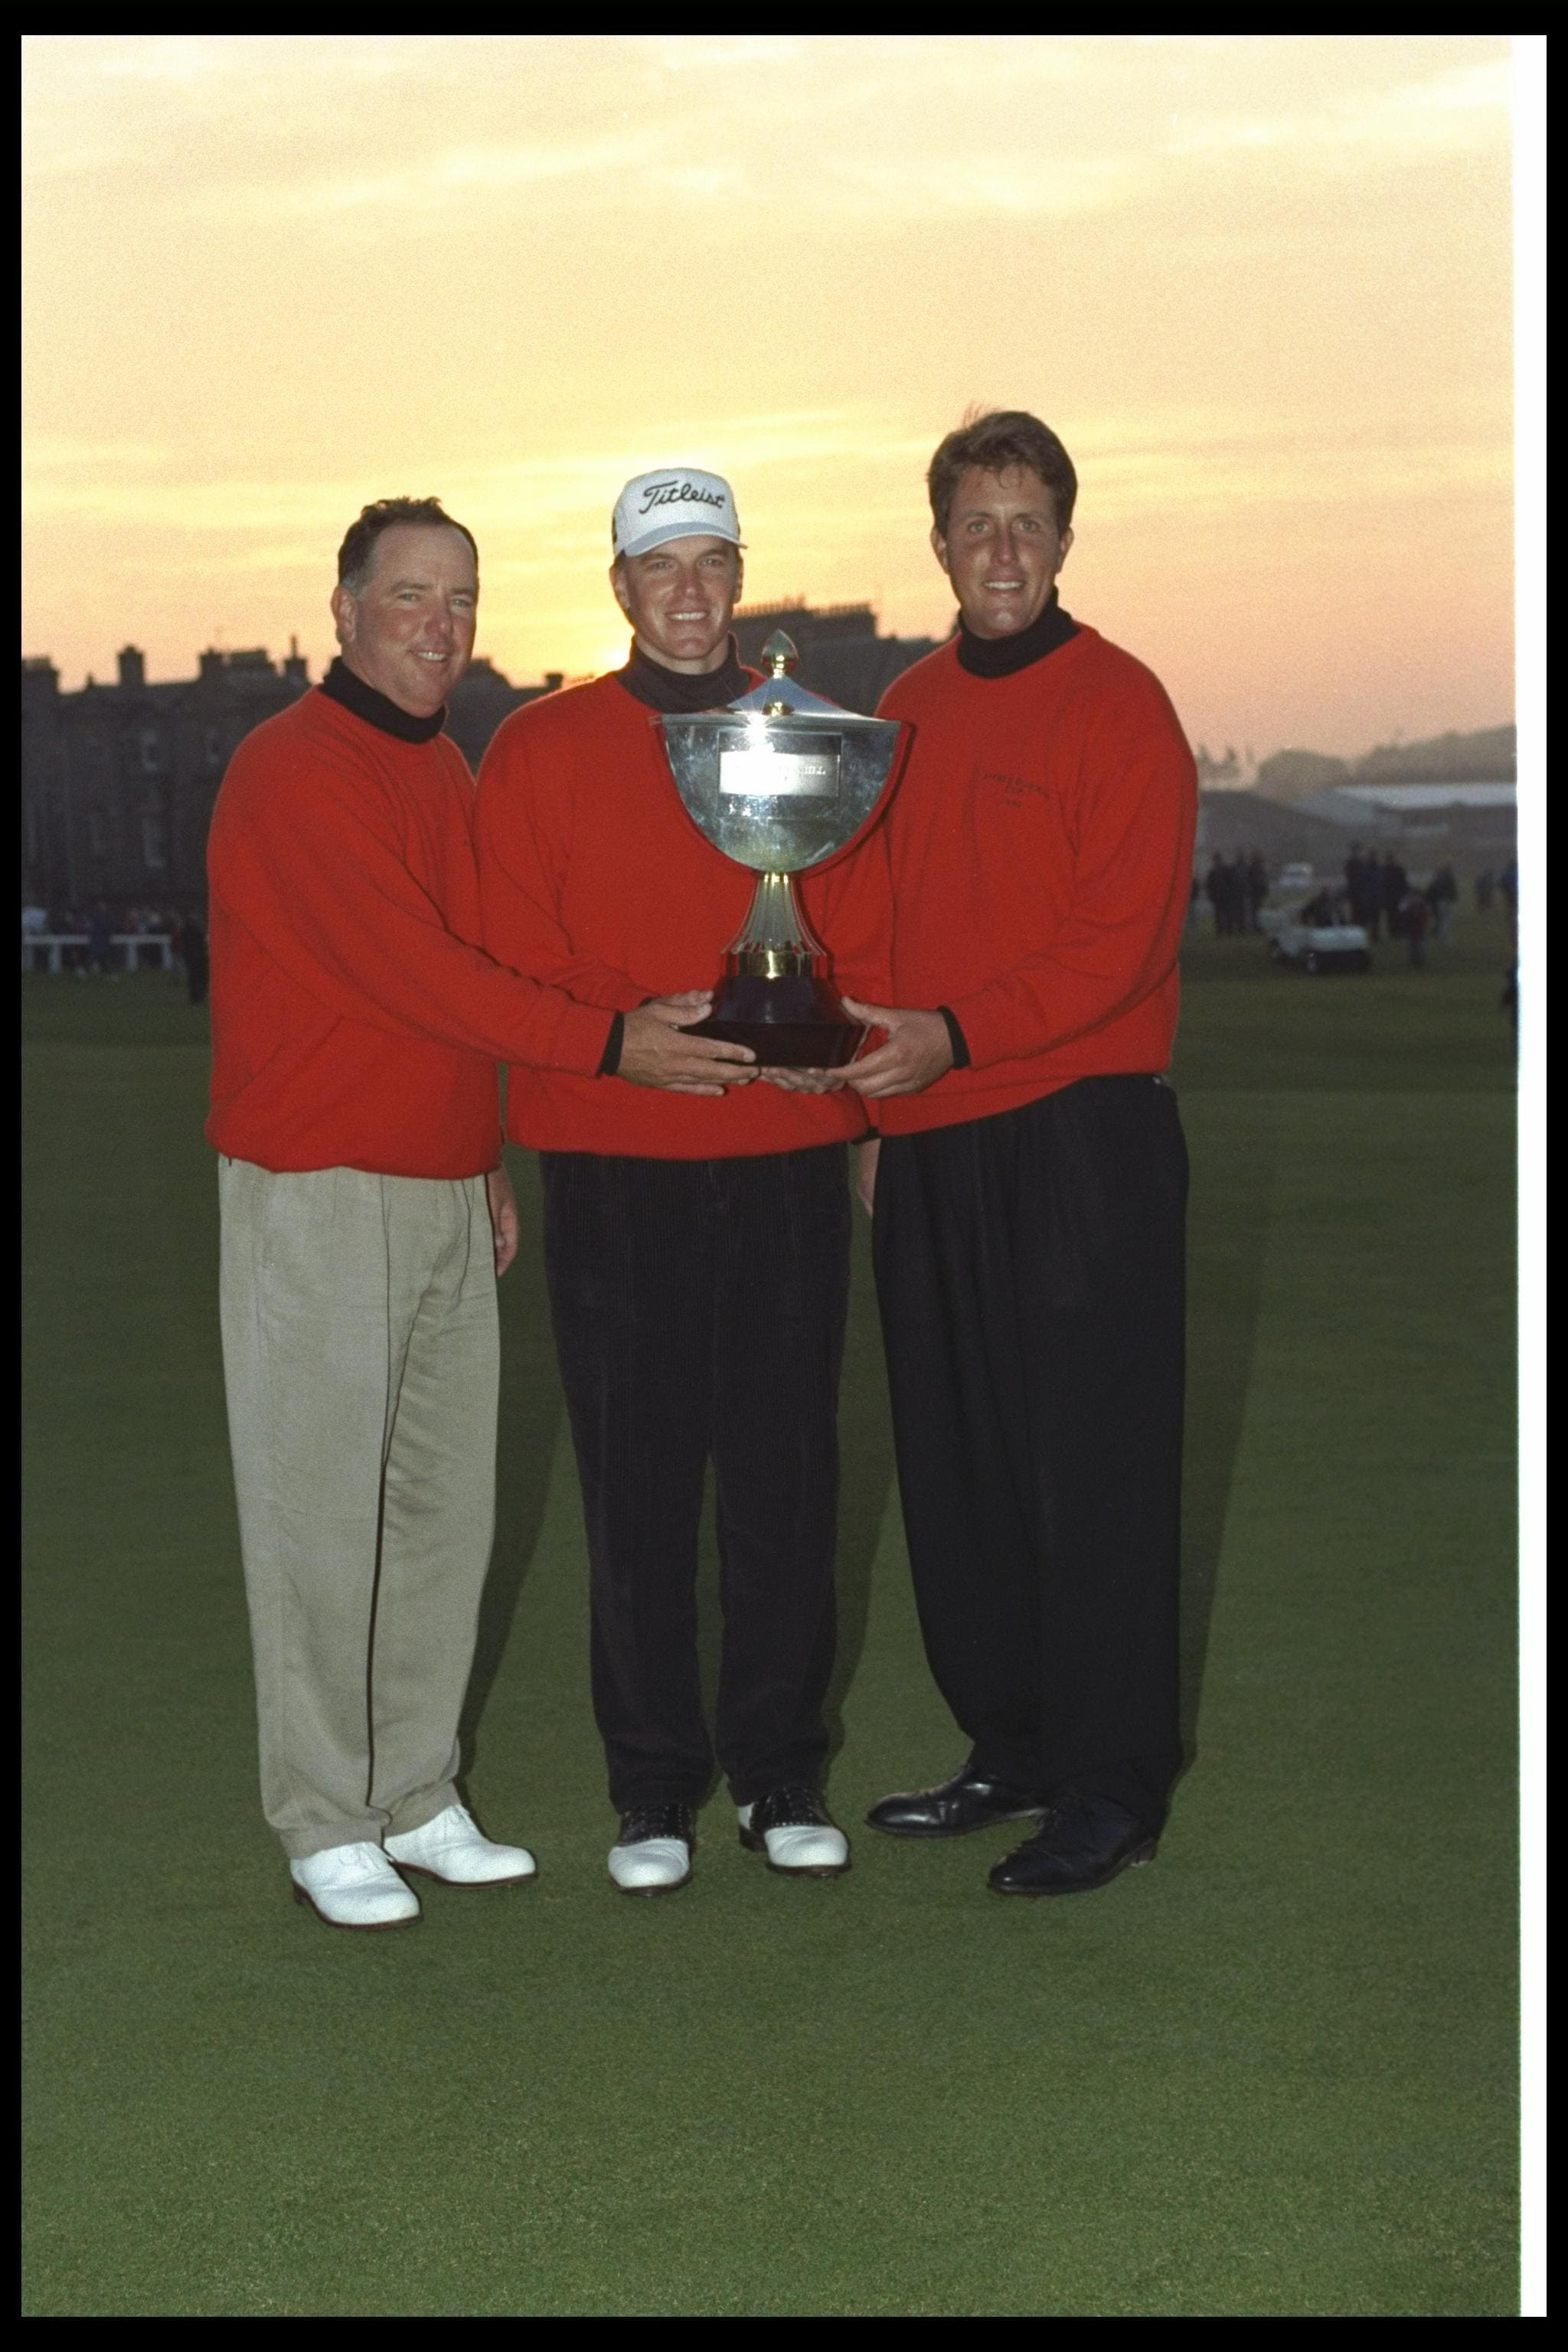 Phil Mickelson and the 1996 Alfred Dunhill Cup USA Team